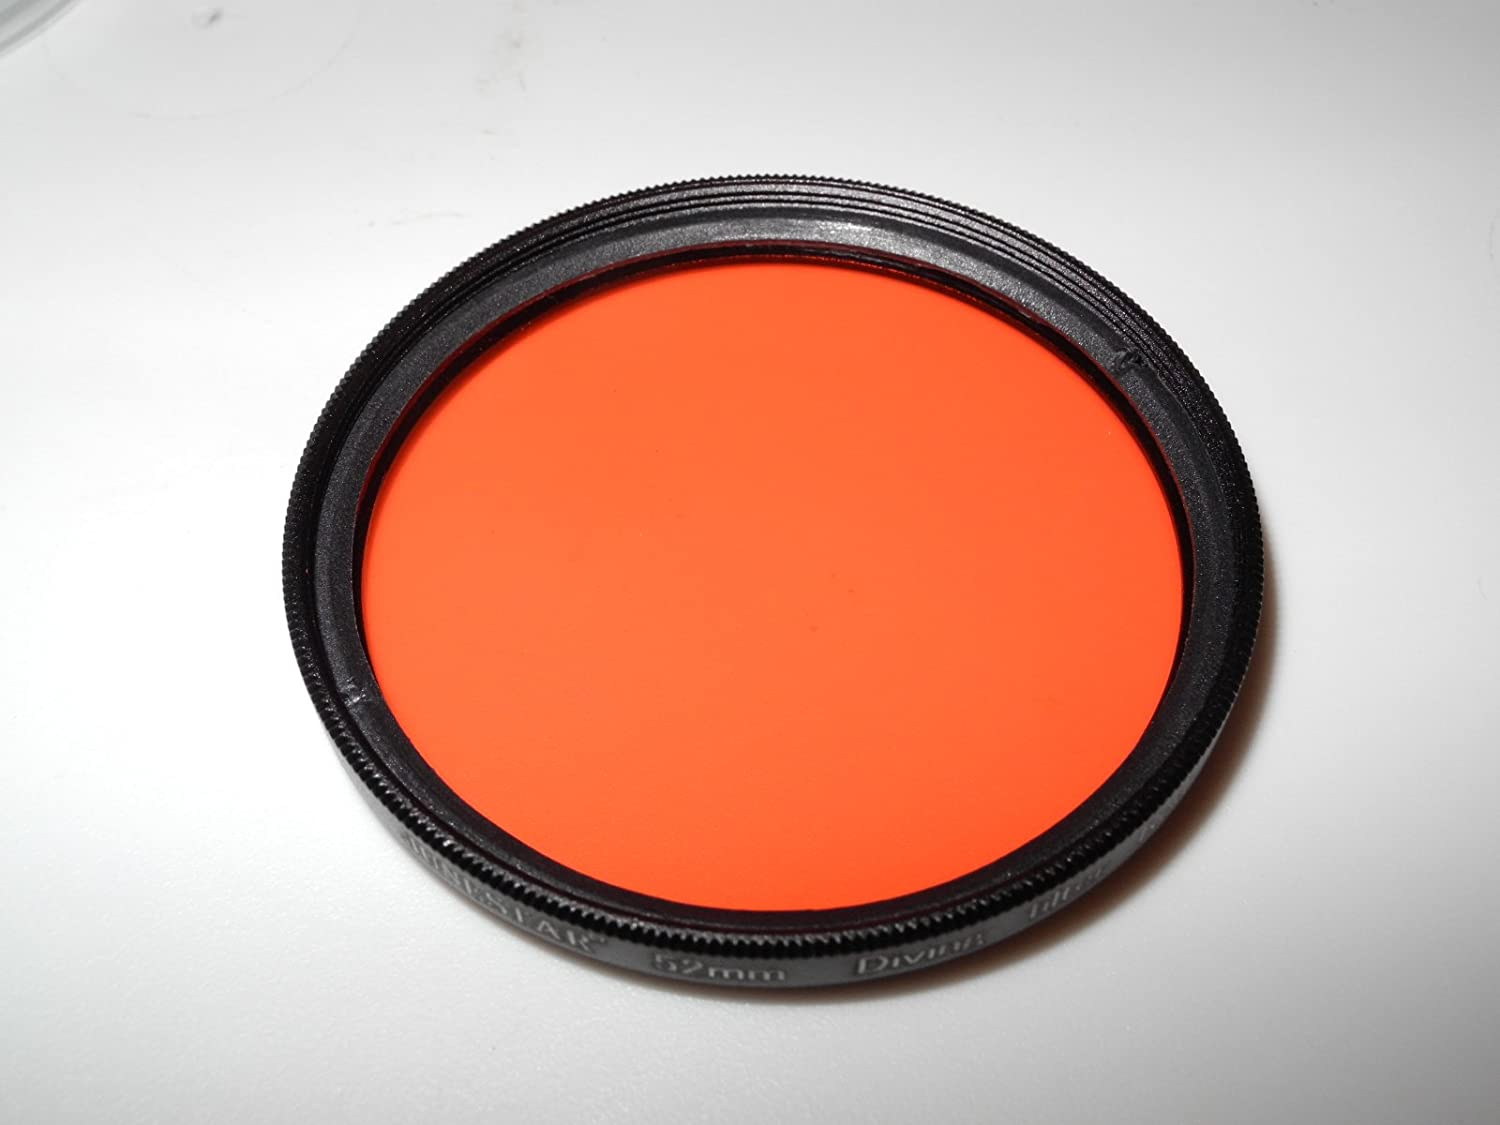 67mm Red Underwater Dive Filter for Olympus PT-015 PT-018 PT-022 PT-027 PT-054